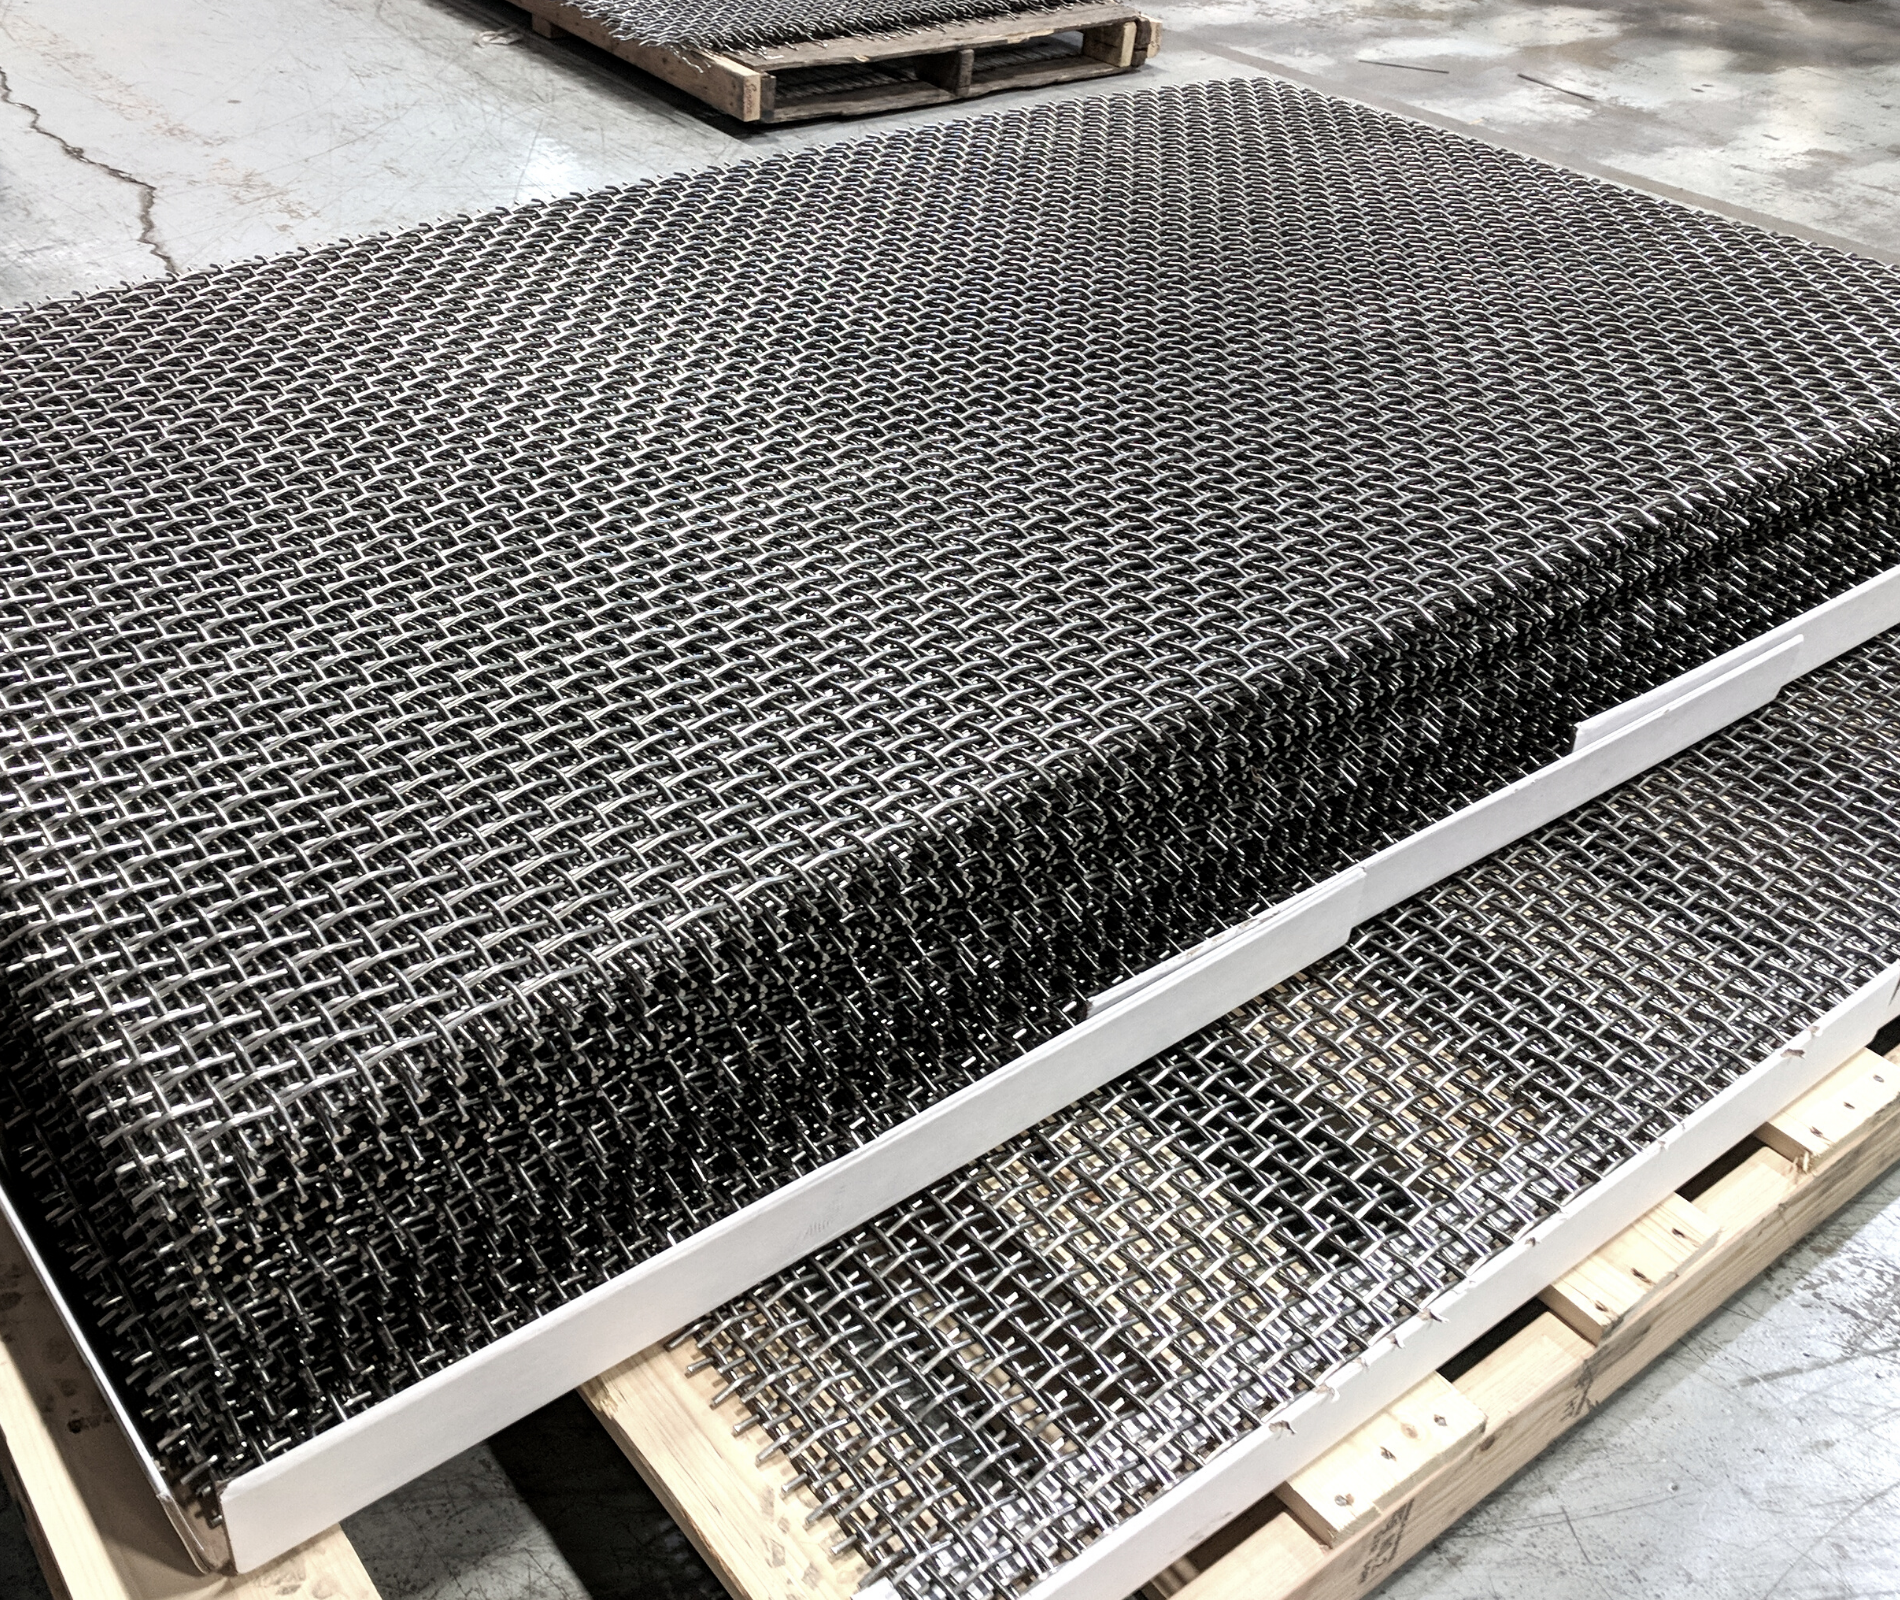 Woven Wire Mesh Stack